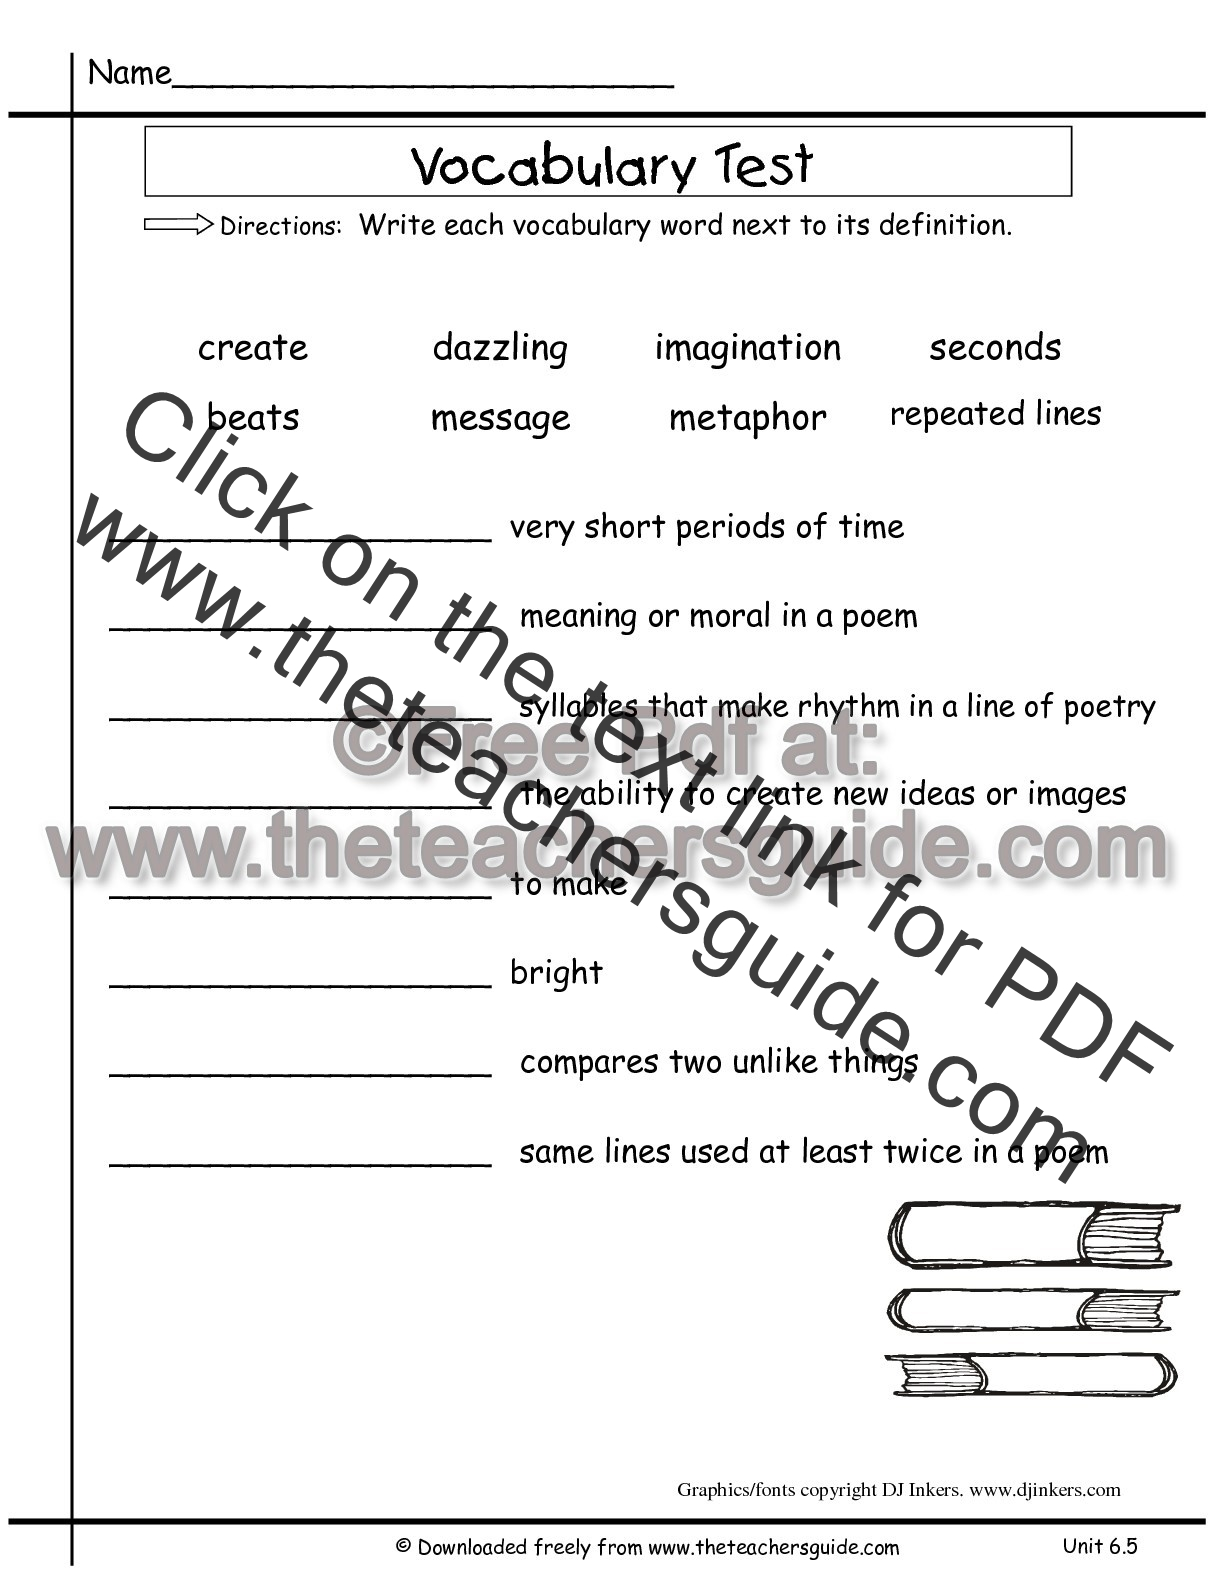 Second Grade Vocabulary Test Practice Worksheet Word